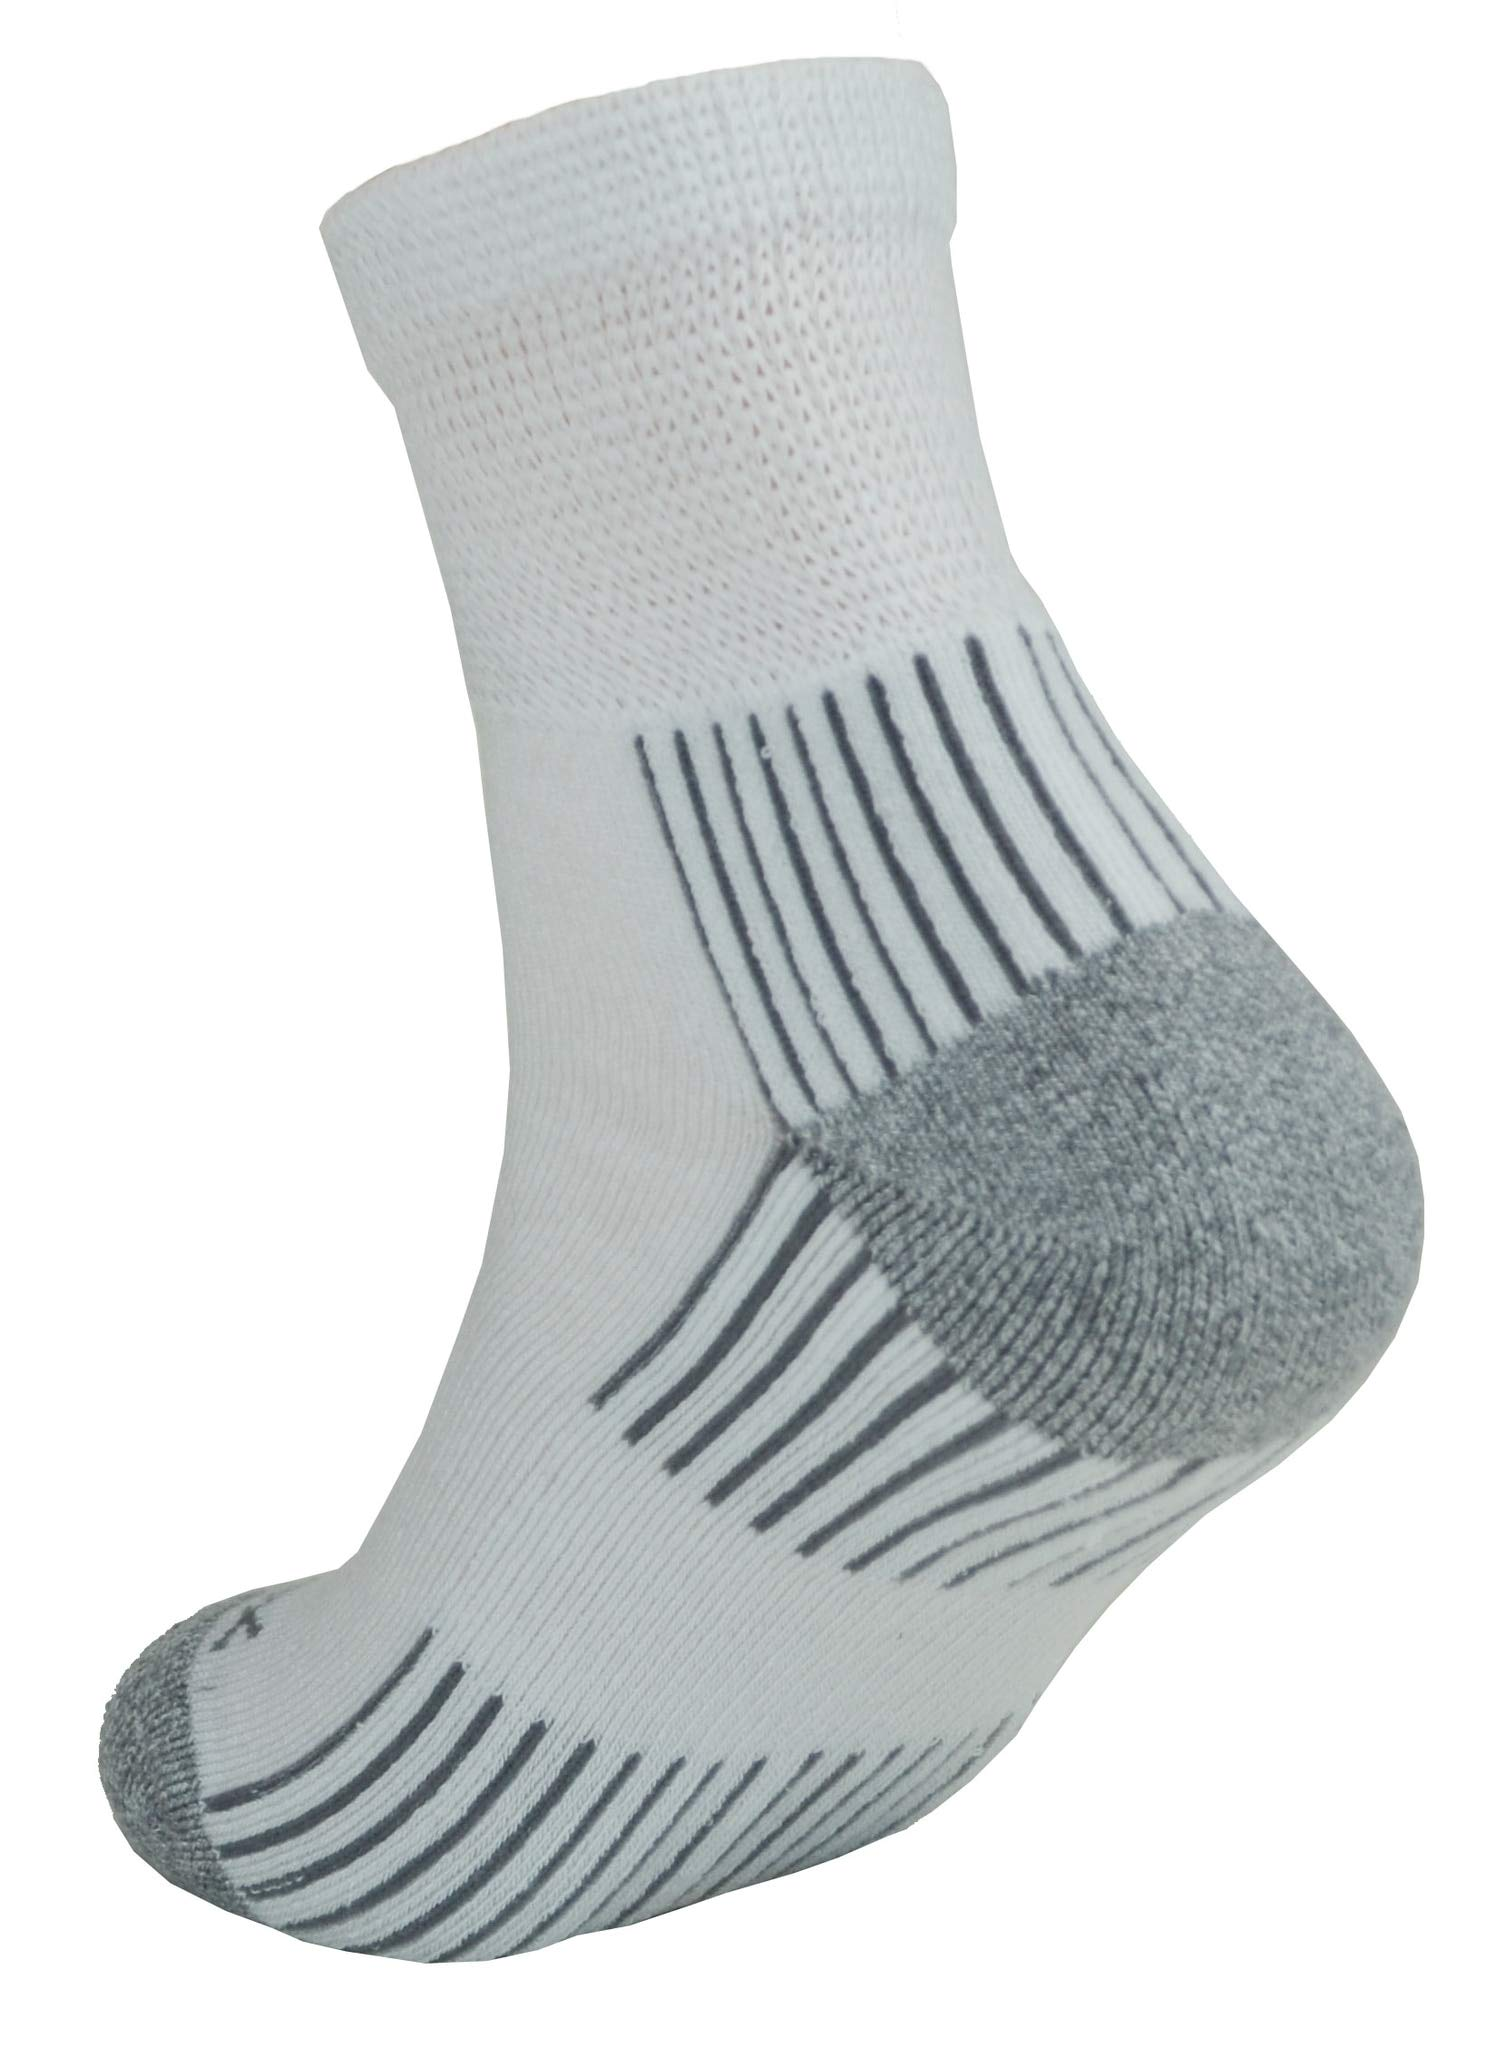 Ecosox Viscose Diabetic Bamboo Quarter w/Arch Support Socks (10-13 (3 Pack), White/Gray)